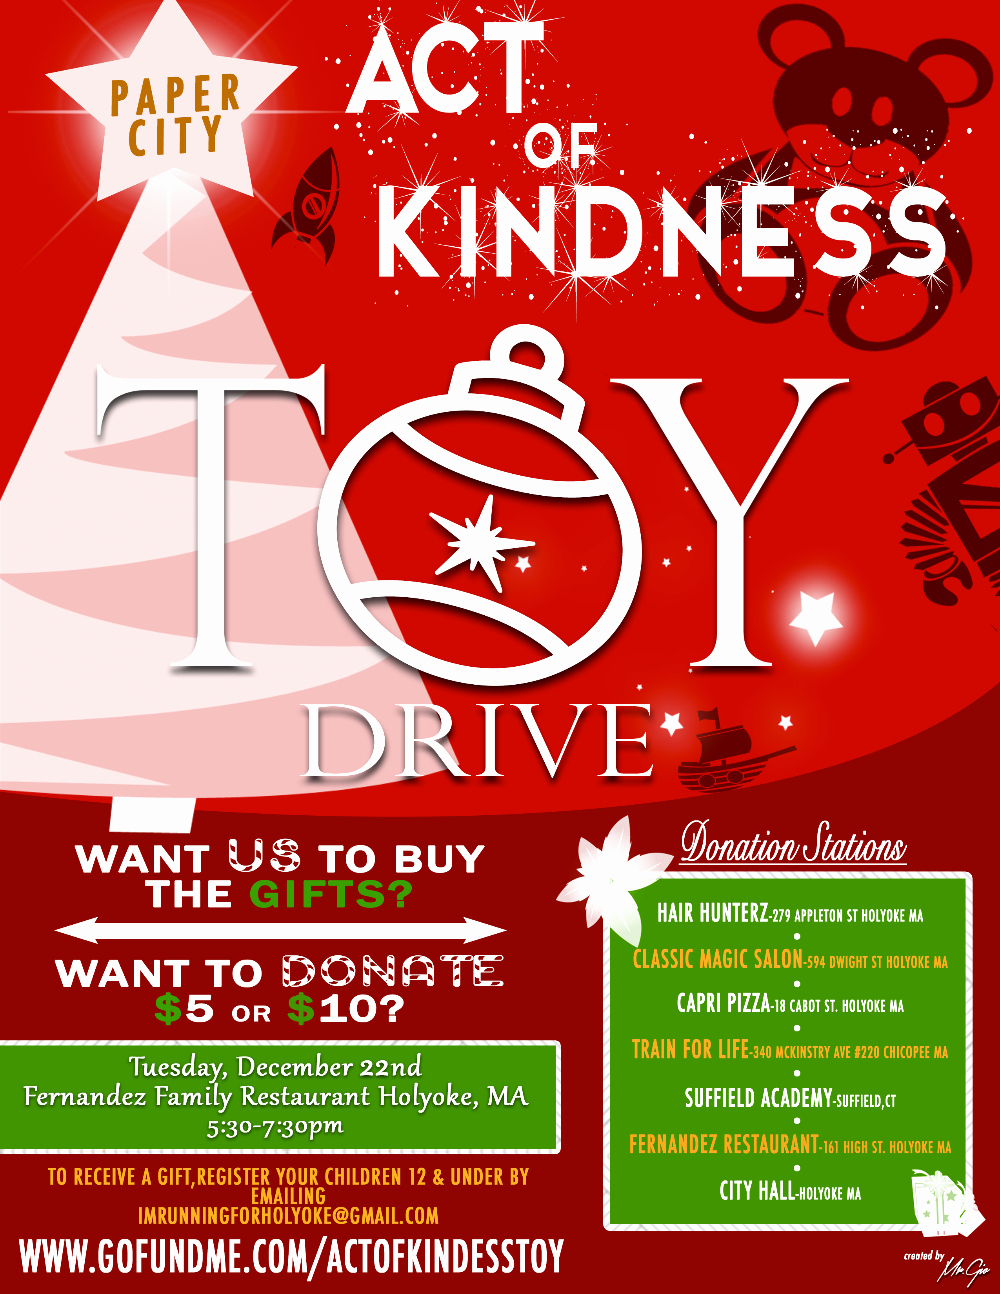 Toy Drive Flyer Template Free Inspirational Holyoke Act Of Kindness toy Drive by Harry Melendez Gofundme